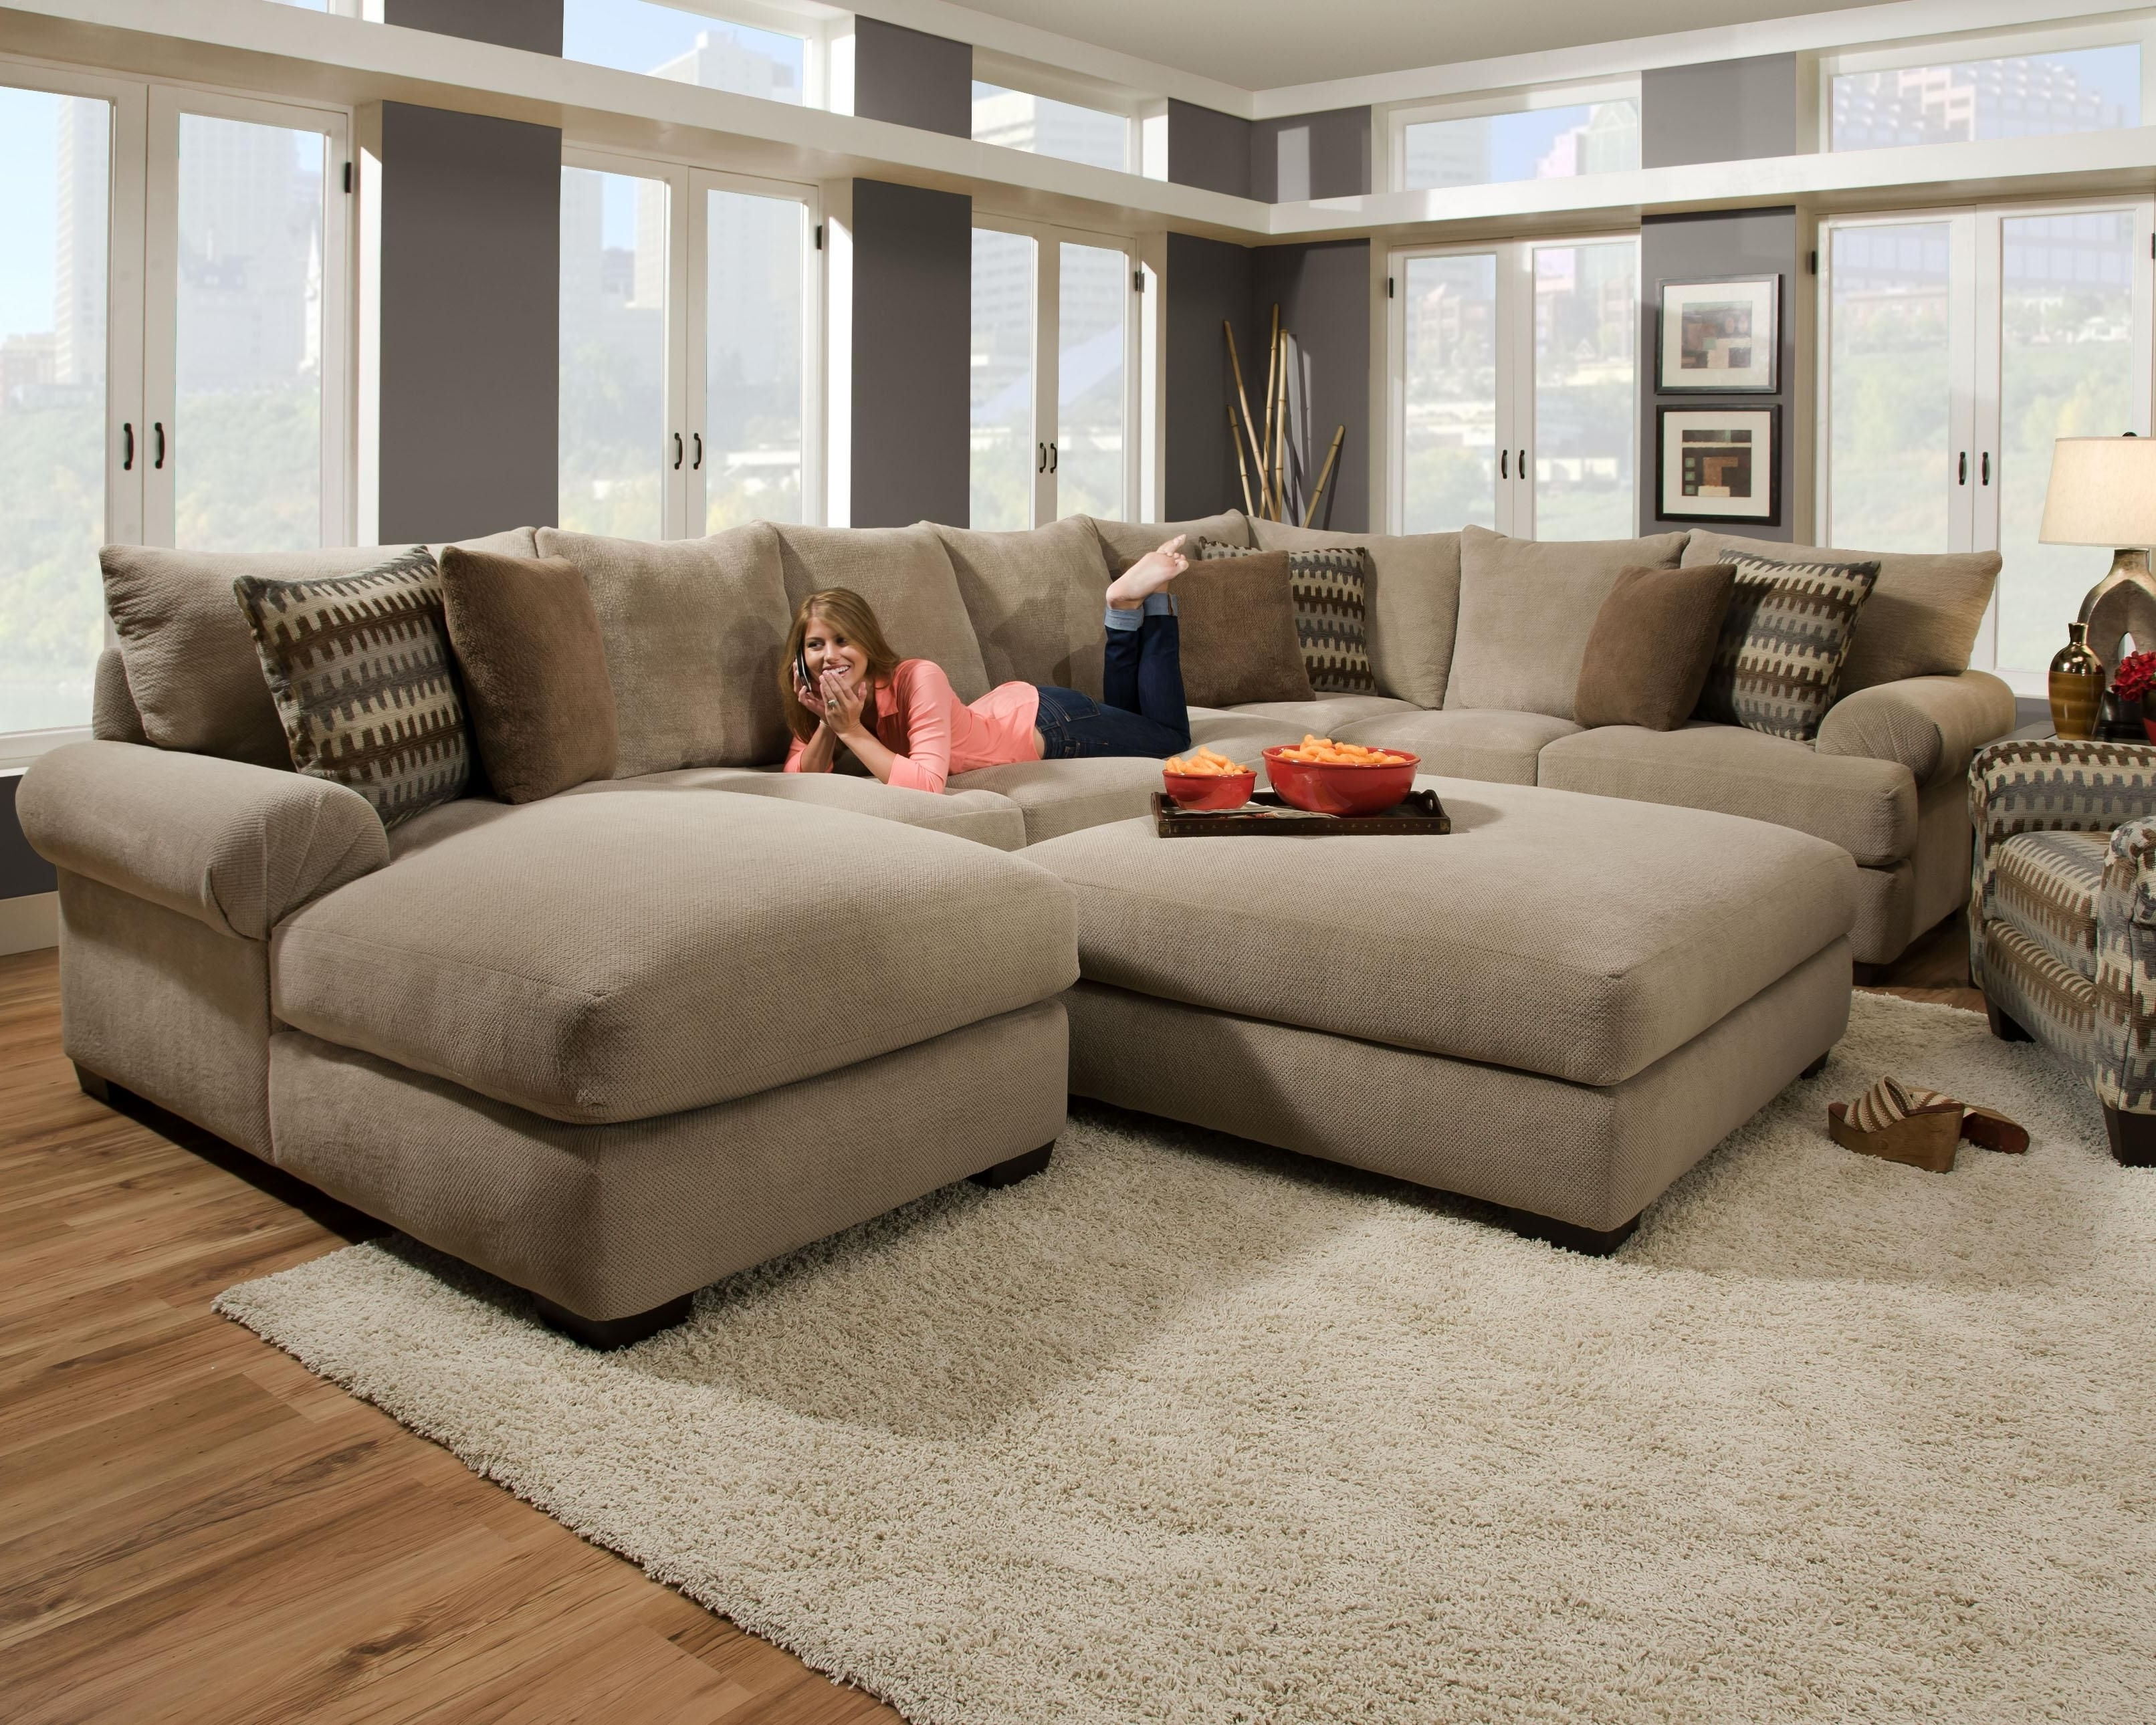 Furniture Design Idea For Living Room And Oversized U Shaped Throughout Well Known Sectionals With Oversized Ottoman (View 4 of 20)